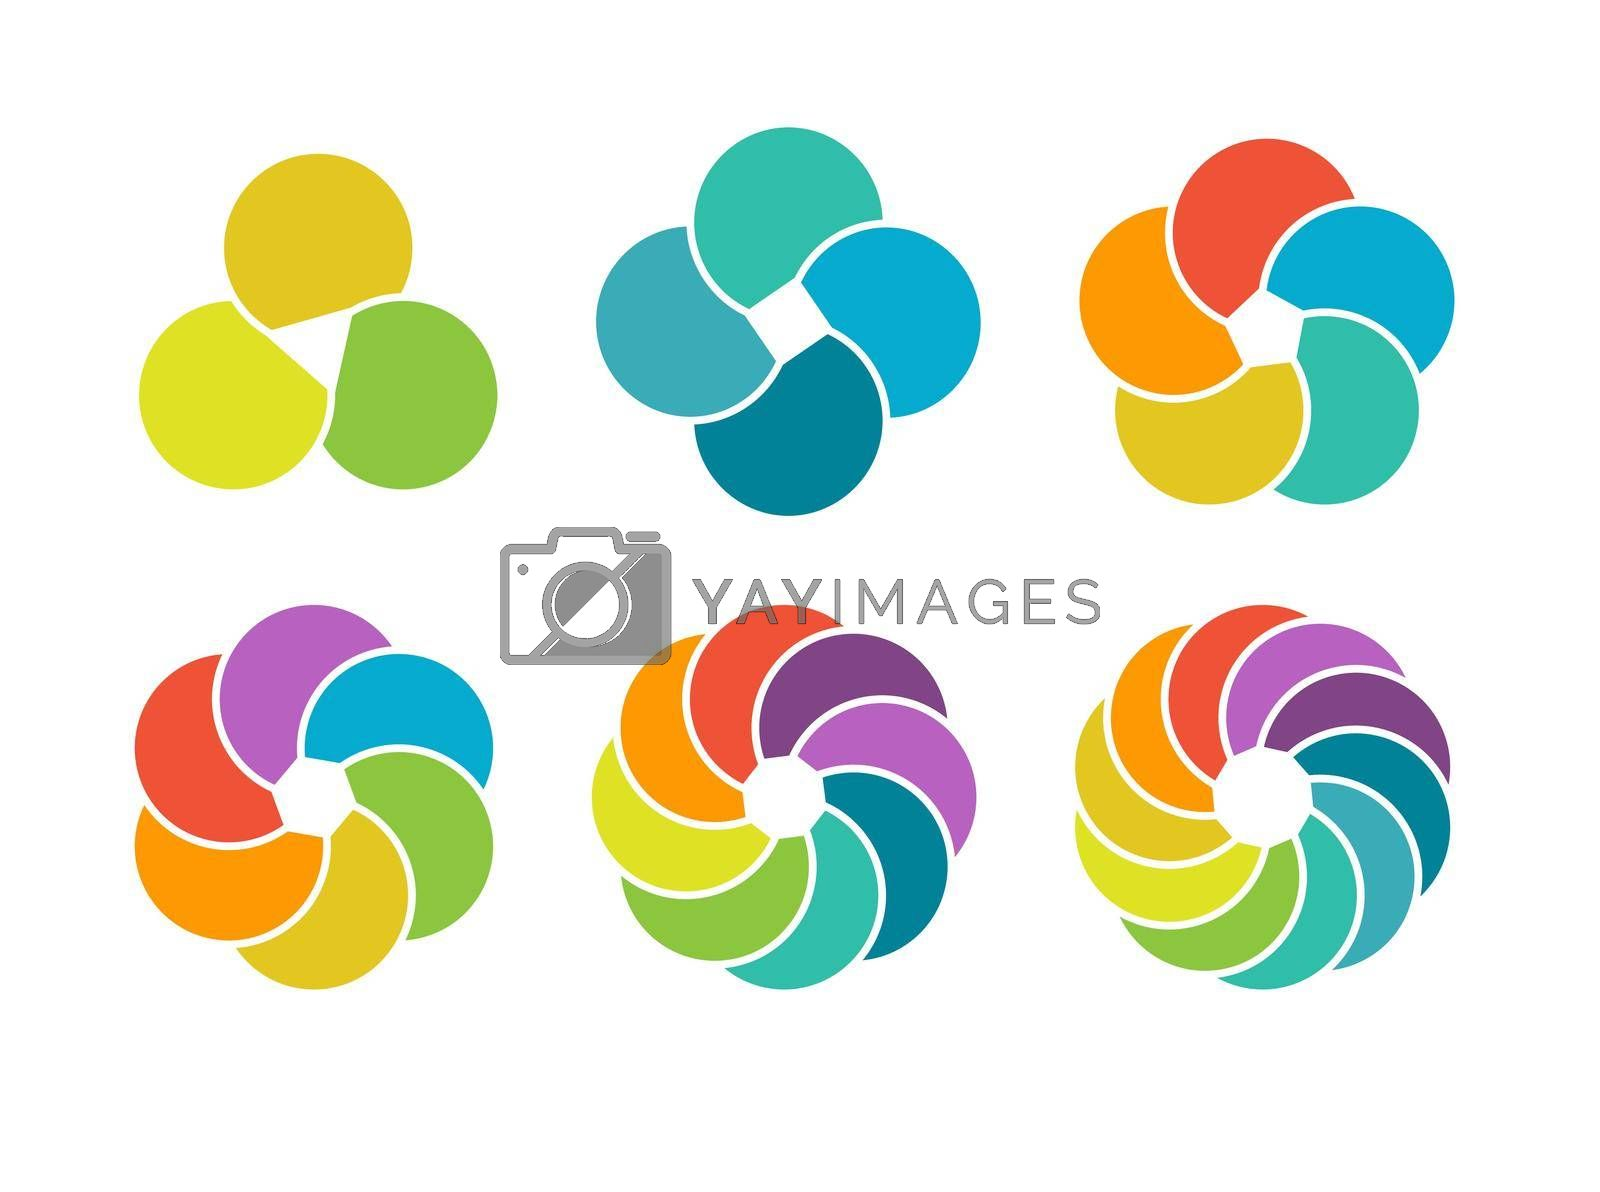 set of color pie charts of 3, 4, 5, 6, 8, and 10 parts or elements for visualizing infographics, business plans, marketing, and reporting. Simple design, stock vector illustration.